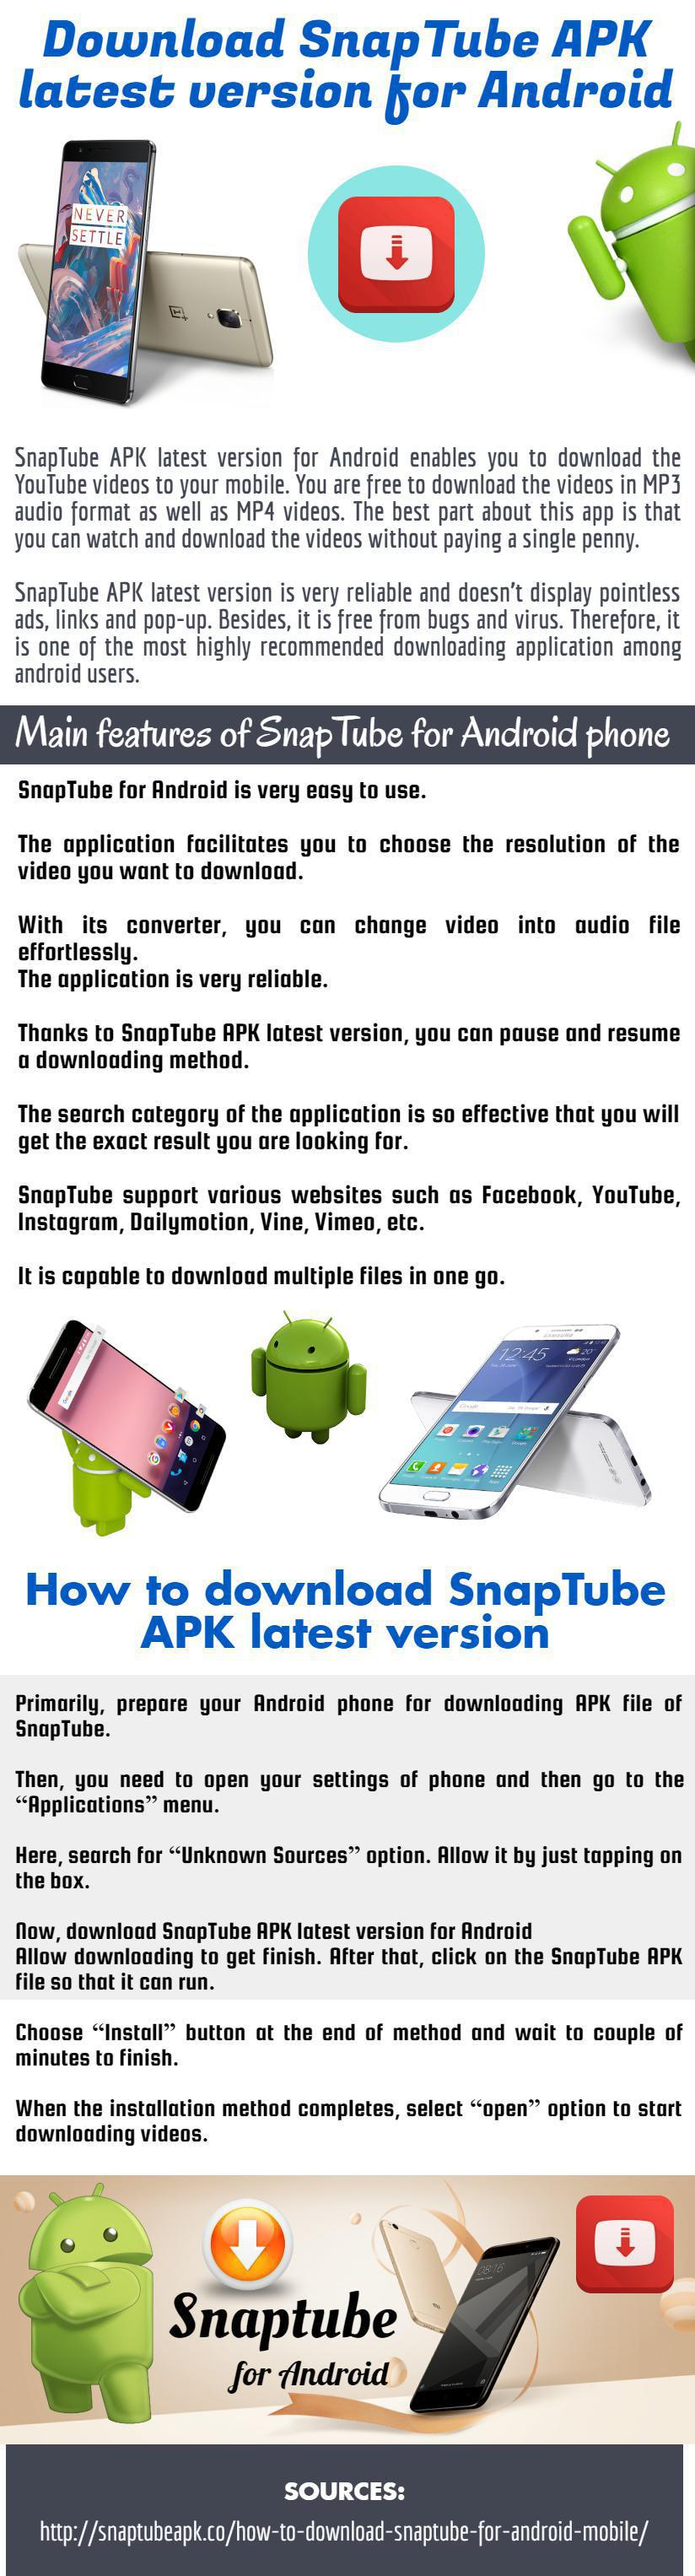 Latest Version For Android Enables You To Download The Youtube Videos To  Your Mobile You Are Free To Download The Videos In Mp3 Audio Format As  Well